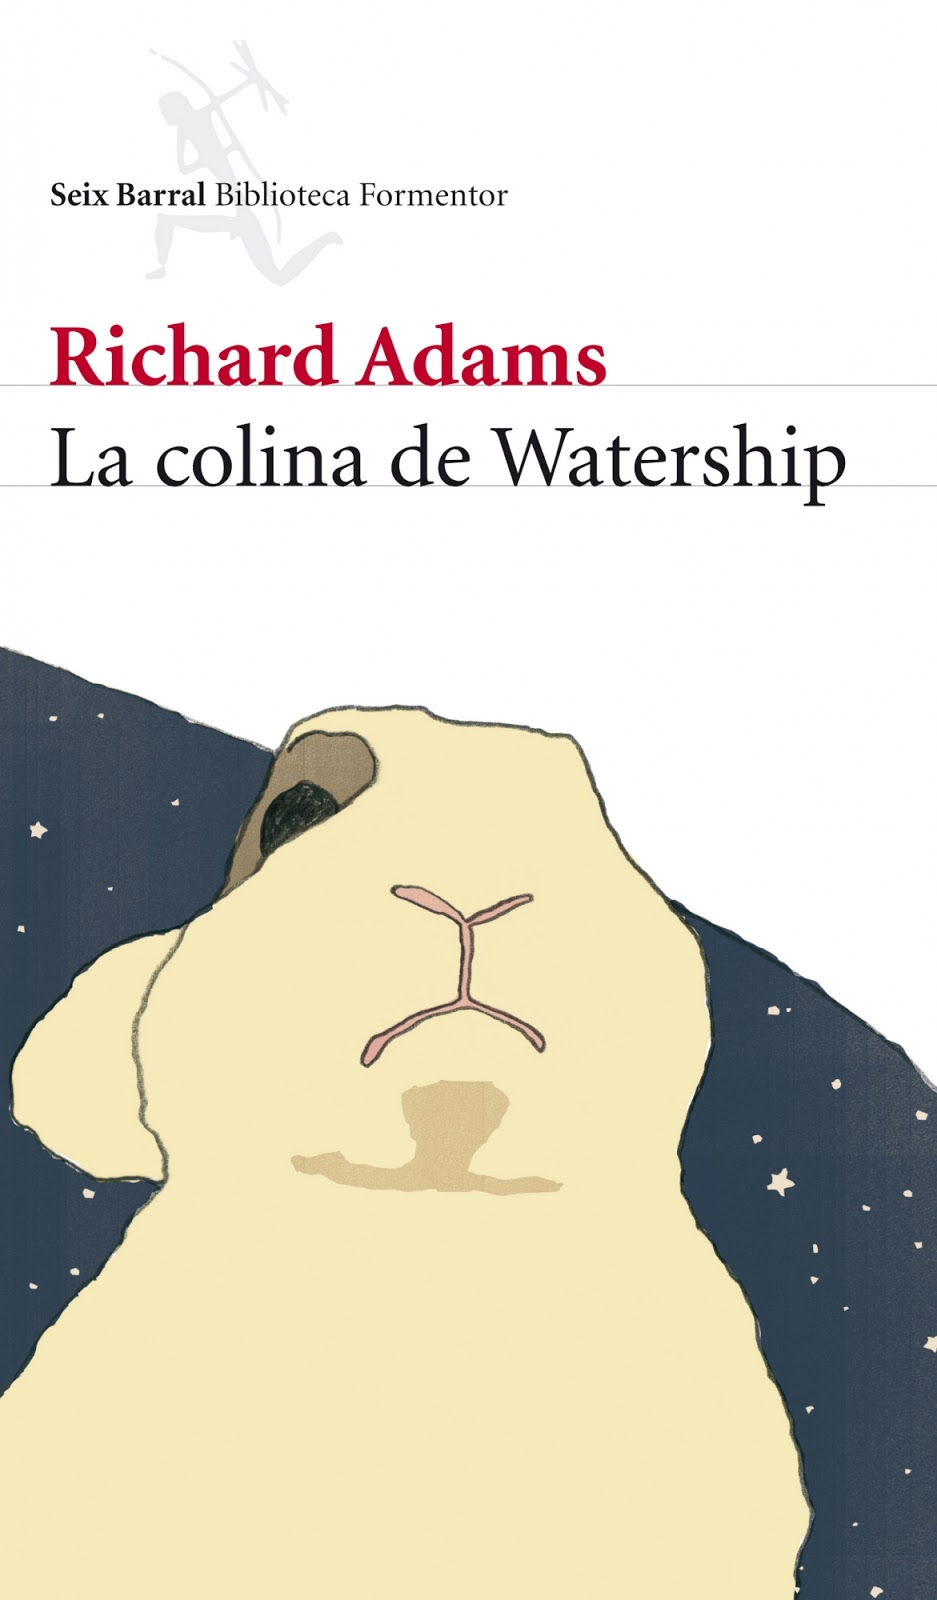 54. La colina de Watership